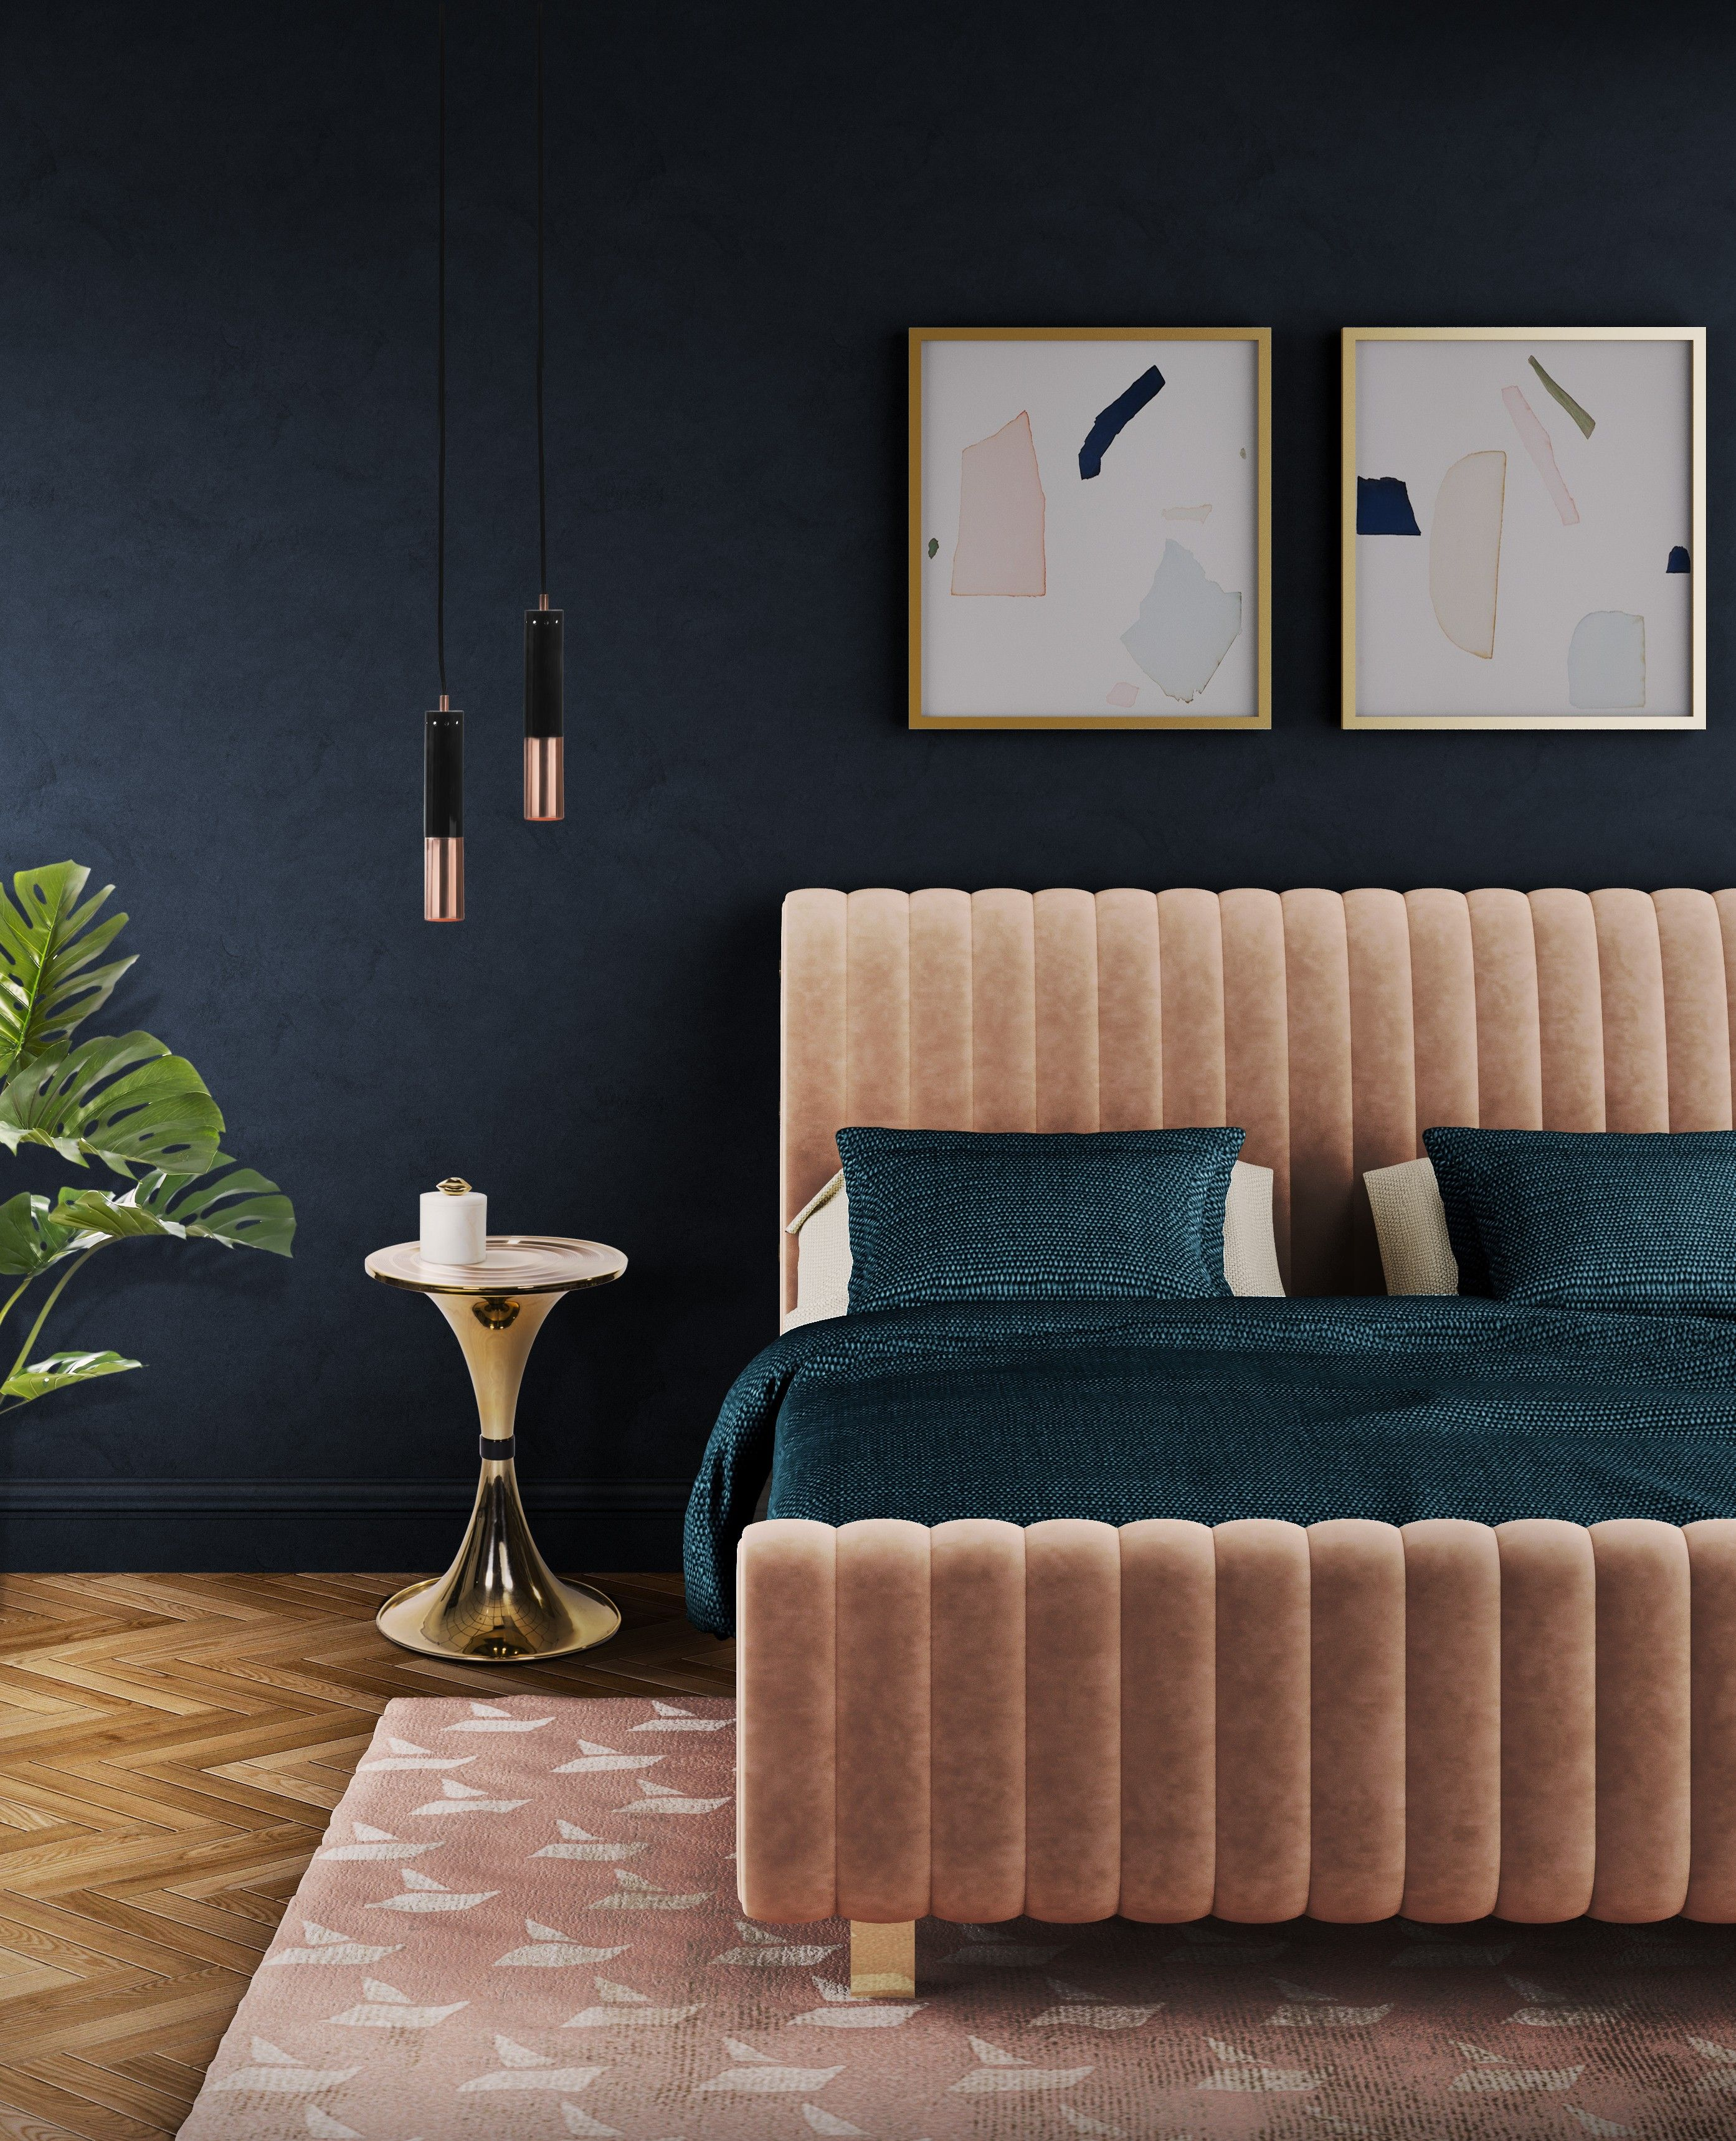 Inspire Yourself With These Beautiful Home Interiors Delightfull S Lighting Fits A Wide Range Of Styles And H Bedroom Decor Home Decor Contemporary Home Decor